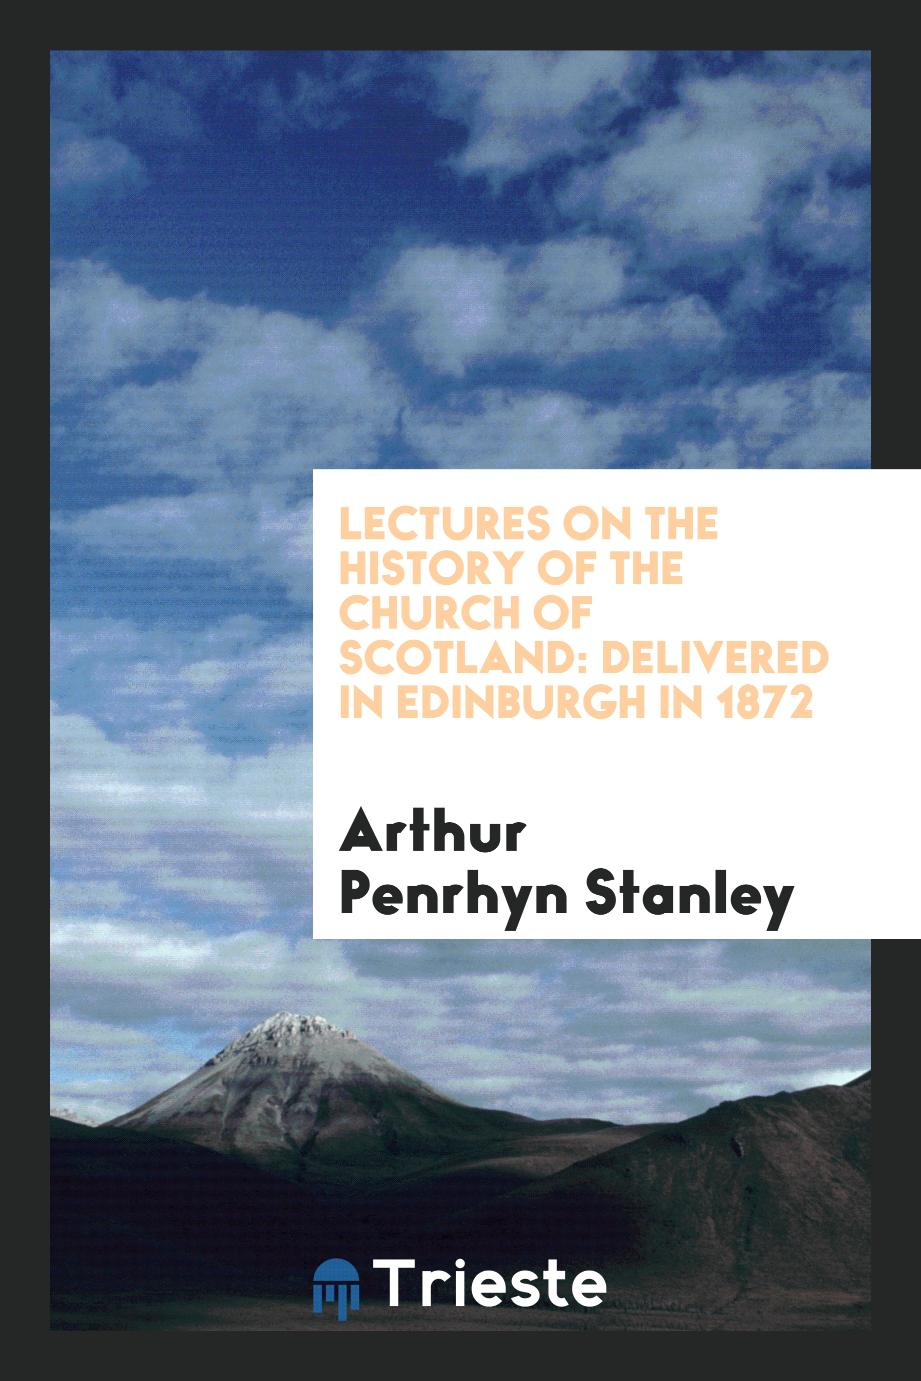 Lectures on the History of the Church of Scotland: Delivered in Edinburgh in 1872